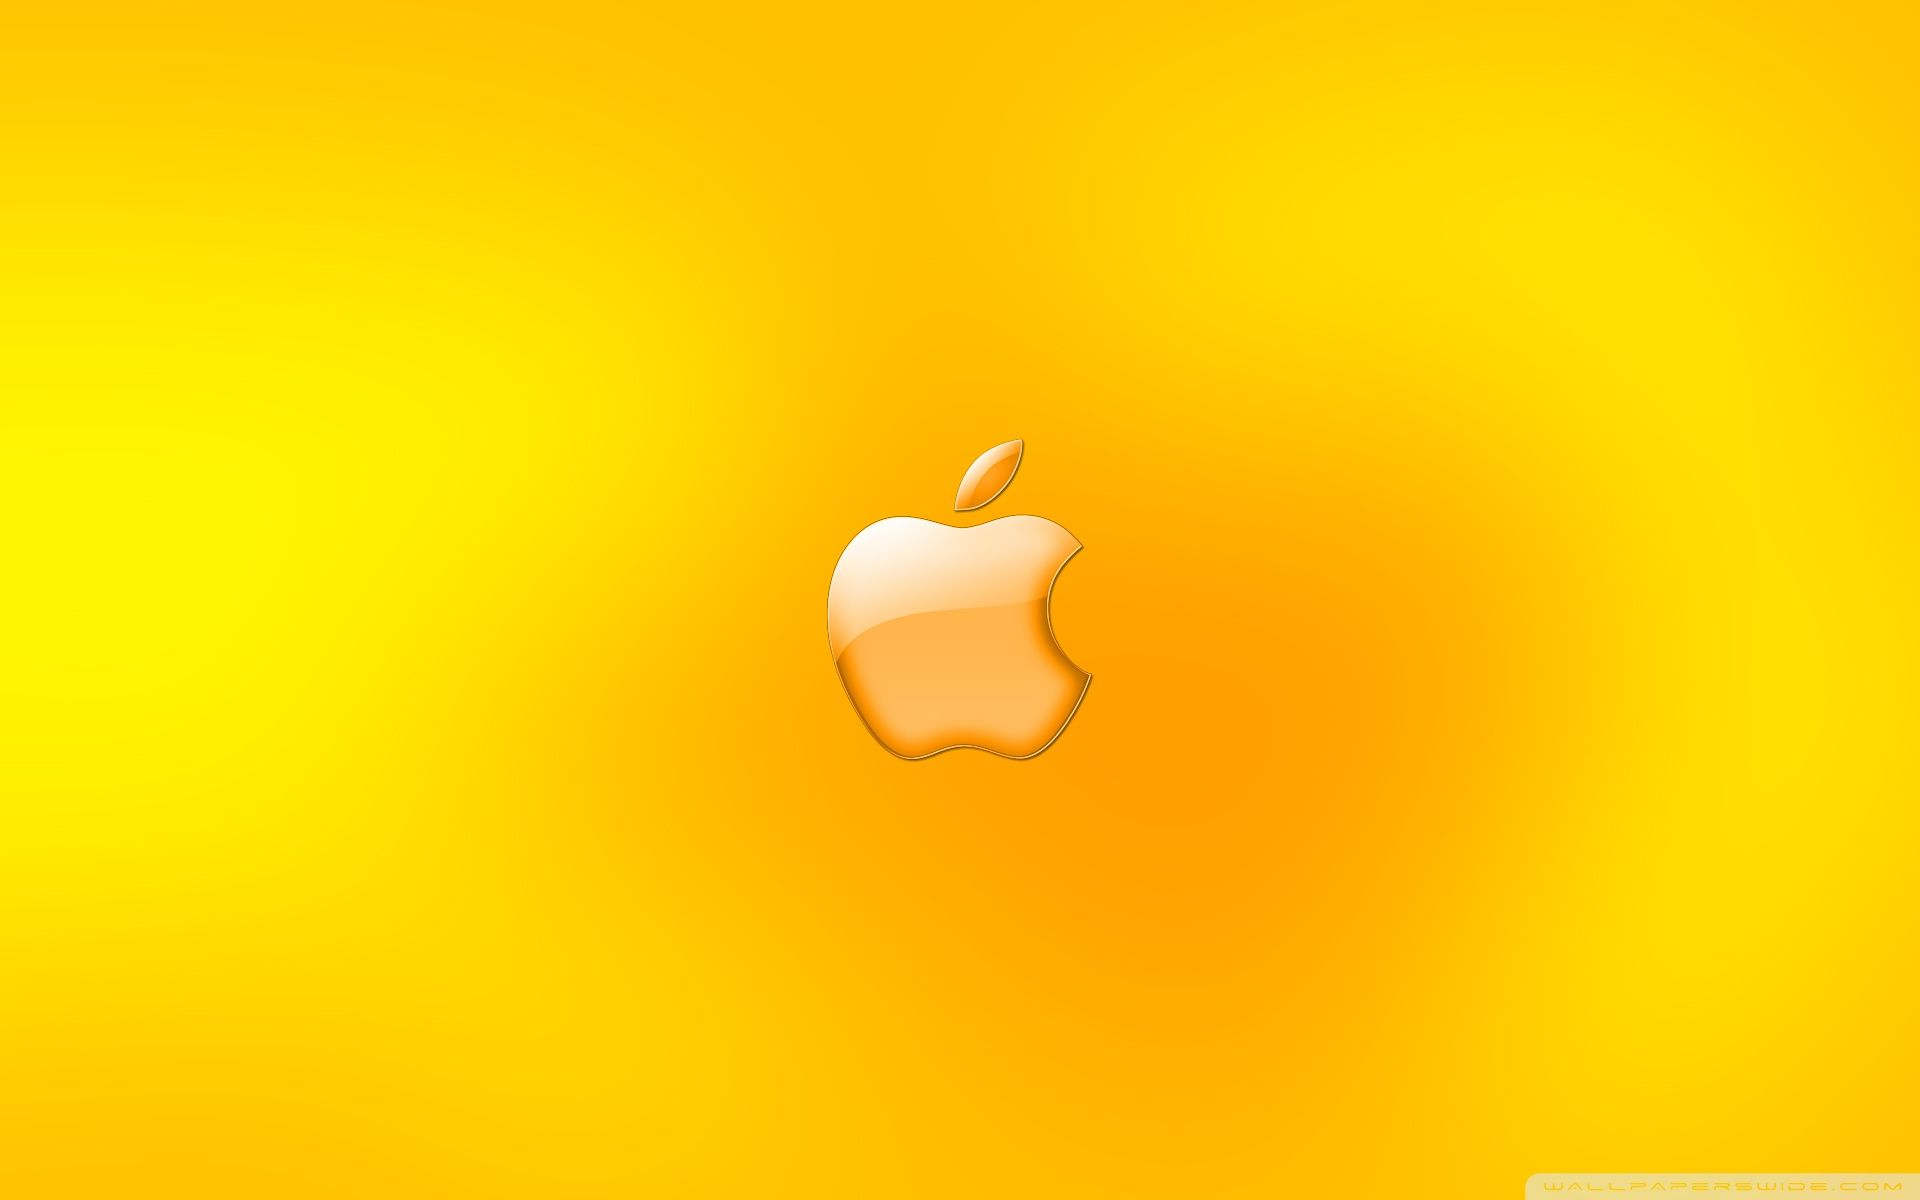 Golden Apple Logo Wallpapers - Top Free Golden Apple Logo